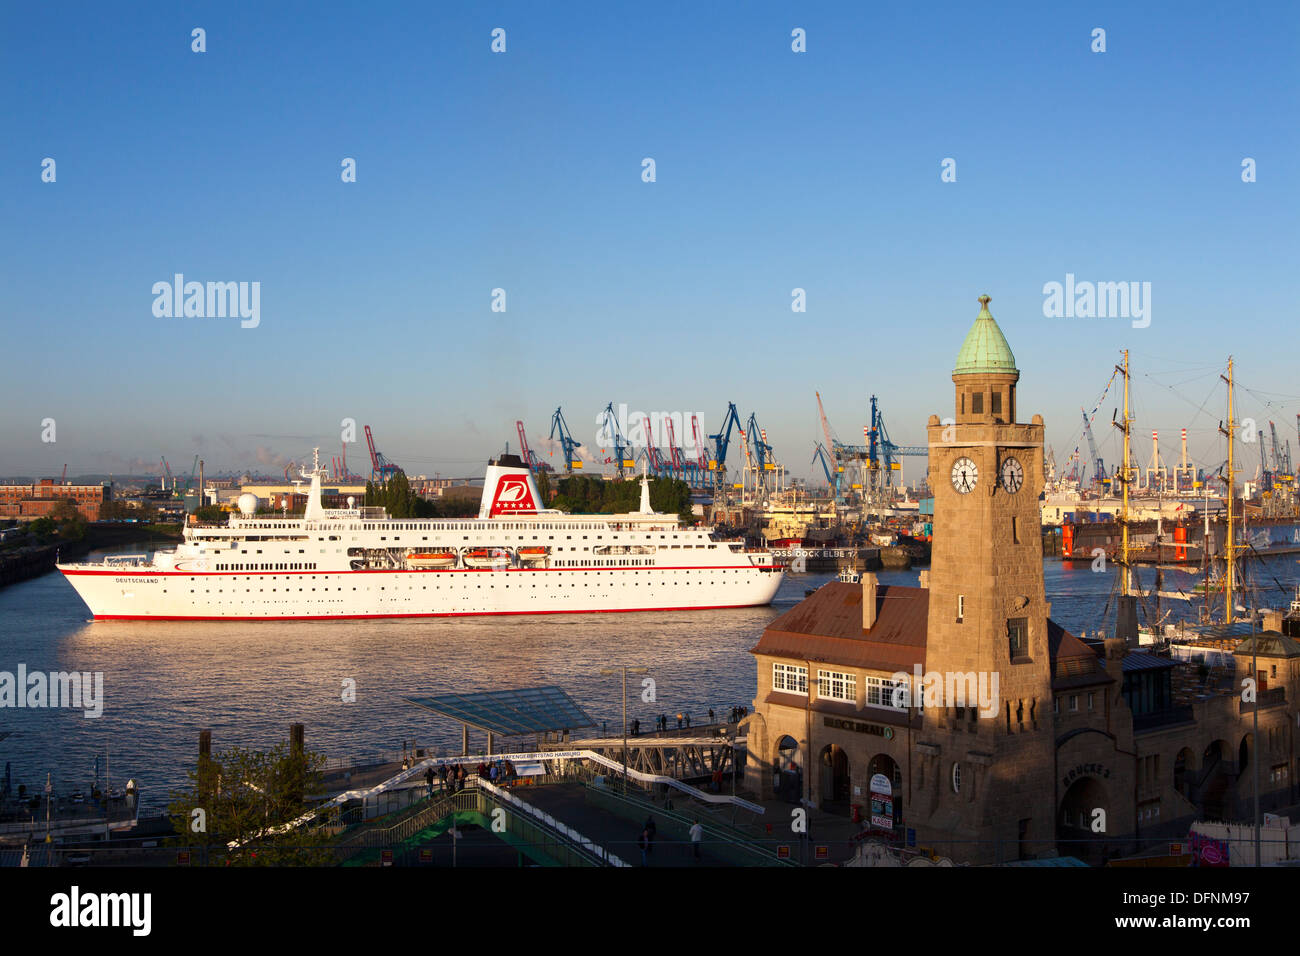 Cruise ship MS Deutschland entering port at the tower of St. Pauli Landungsbruecken, Hamburg, Germany, Europe Stock Photo